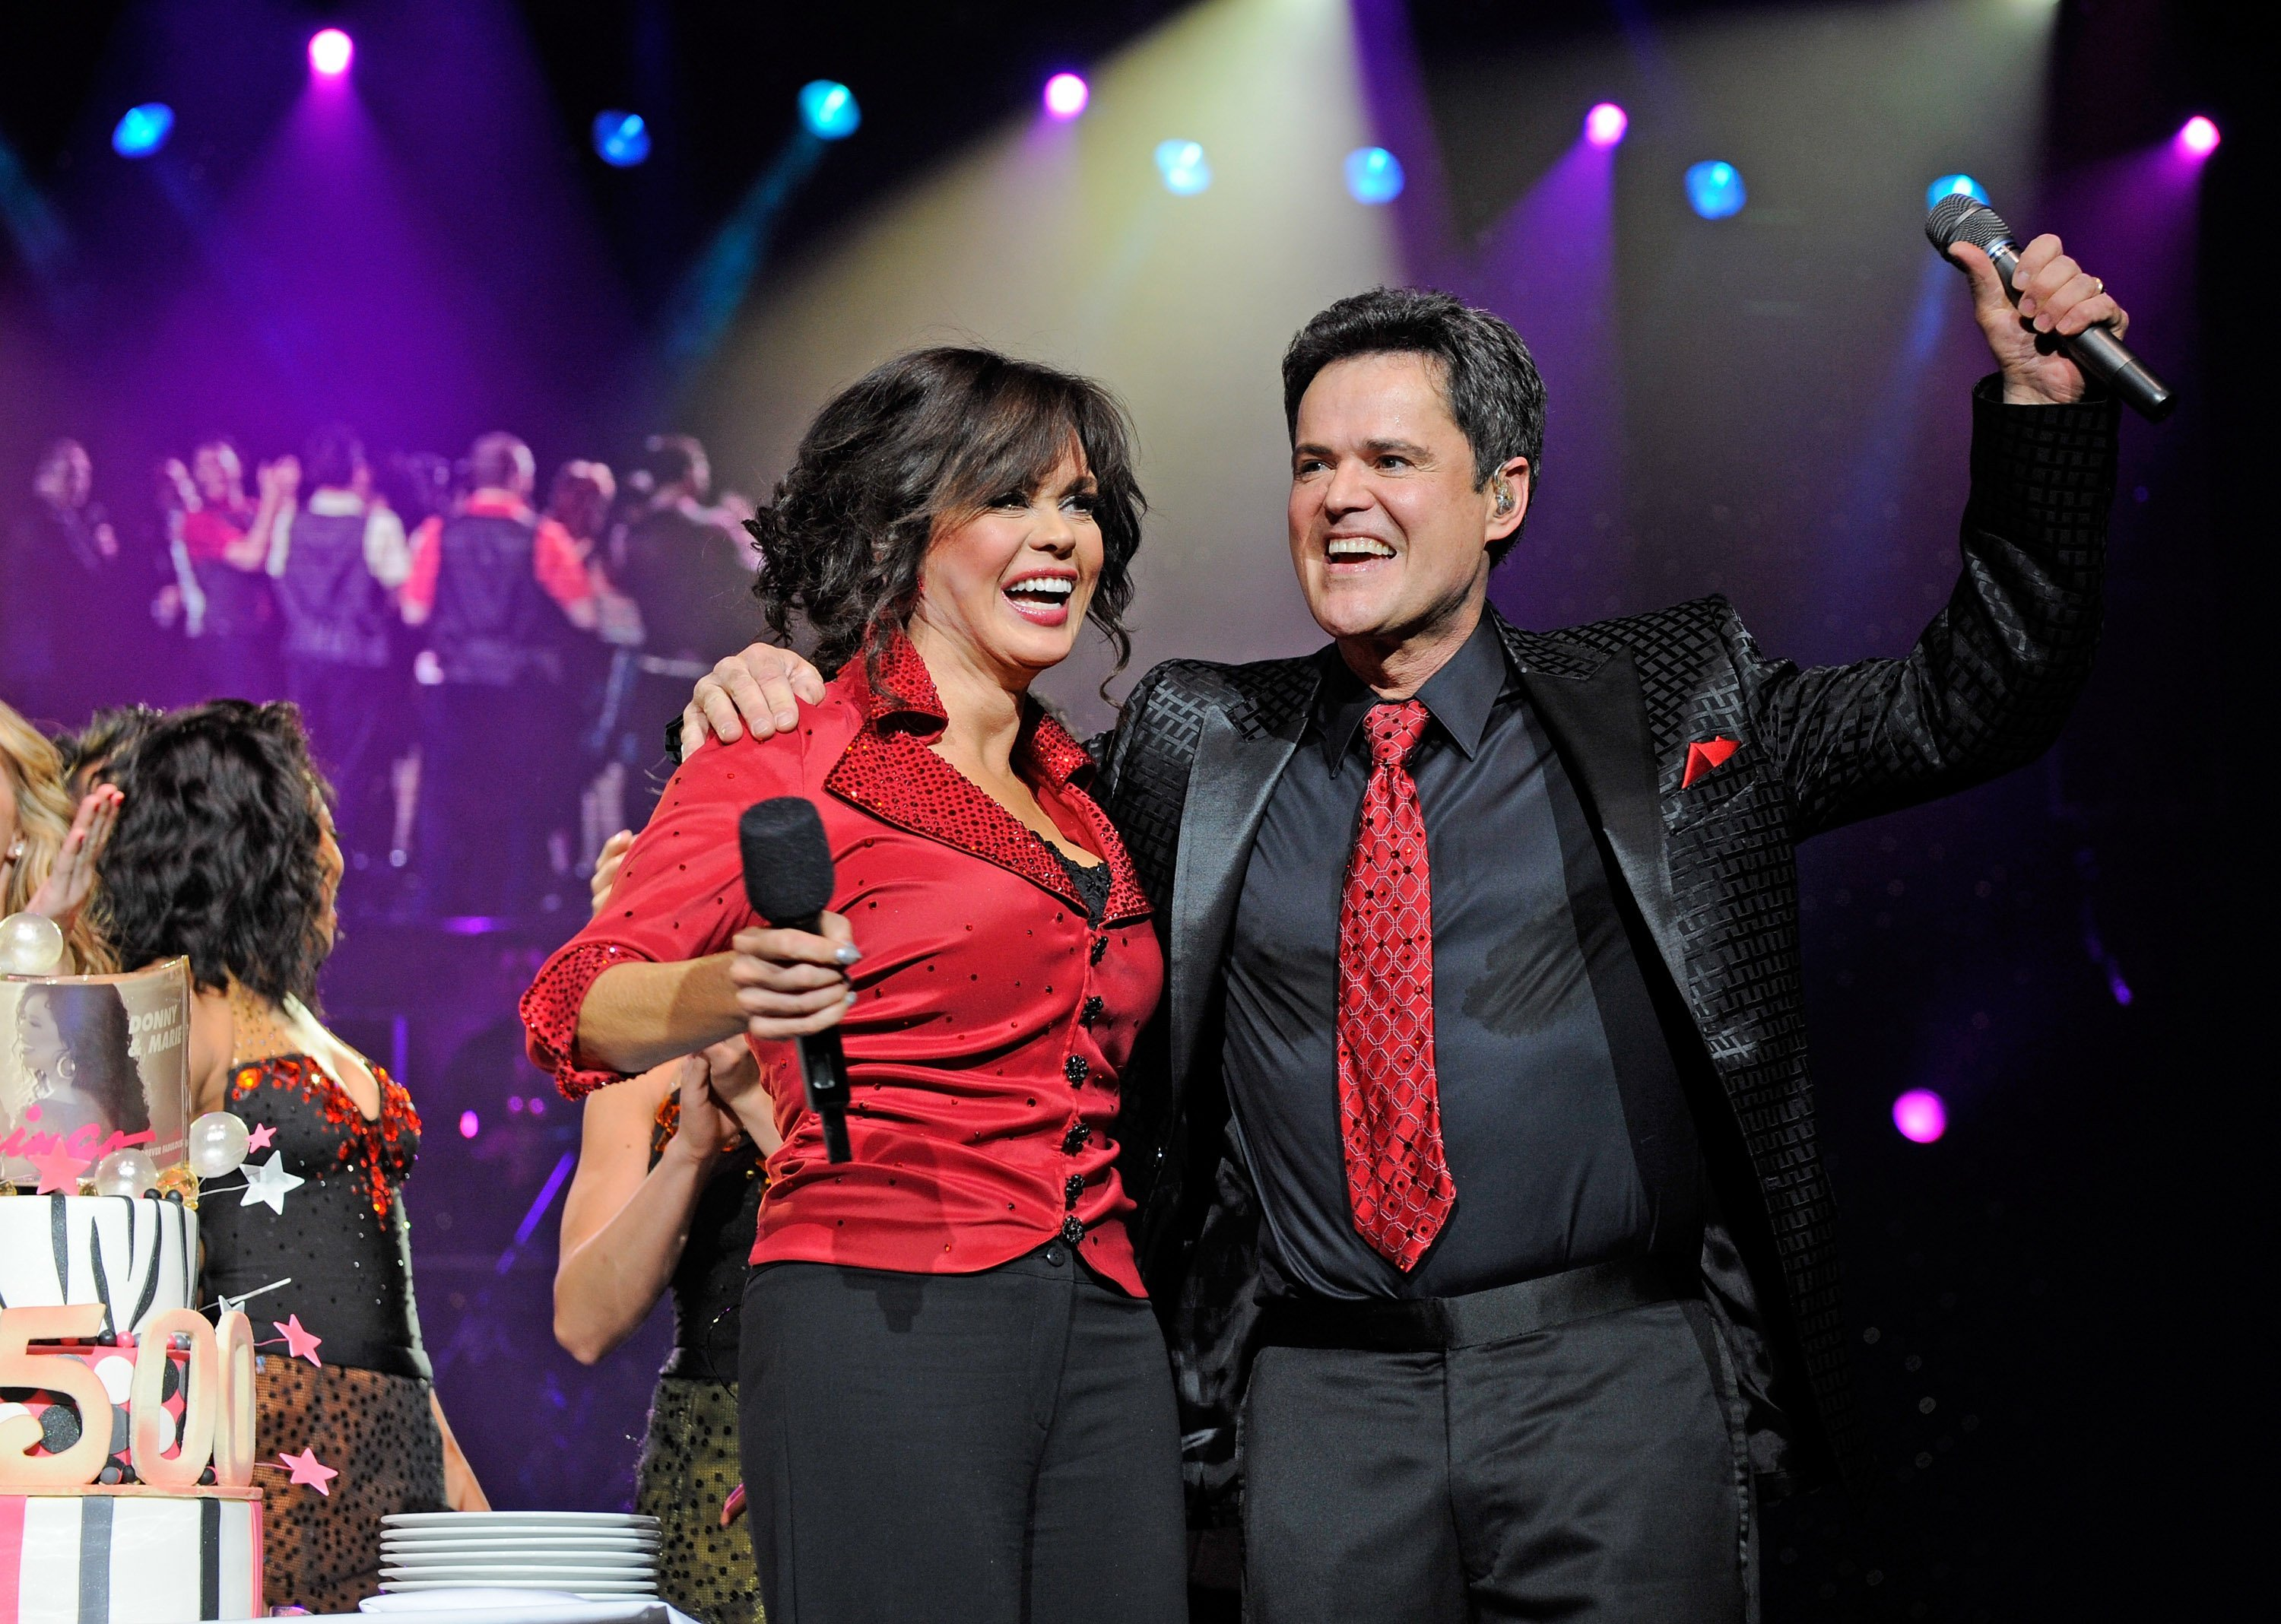 Marie Osmond and Donny Osmond celebrate their 500th show at the Flaming Hotel in Las Vegas, Nevada on March 23, 2011 | Photo: Getty Images